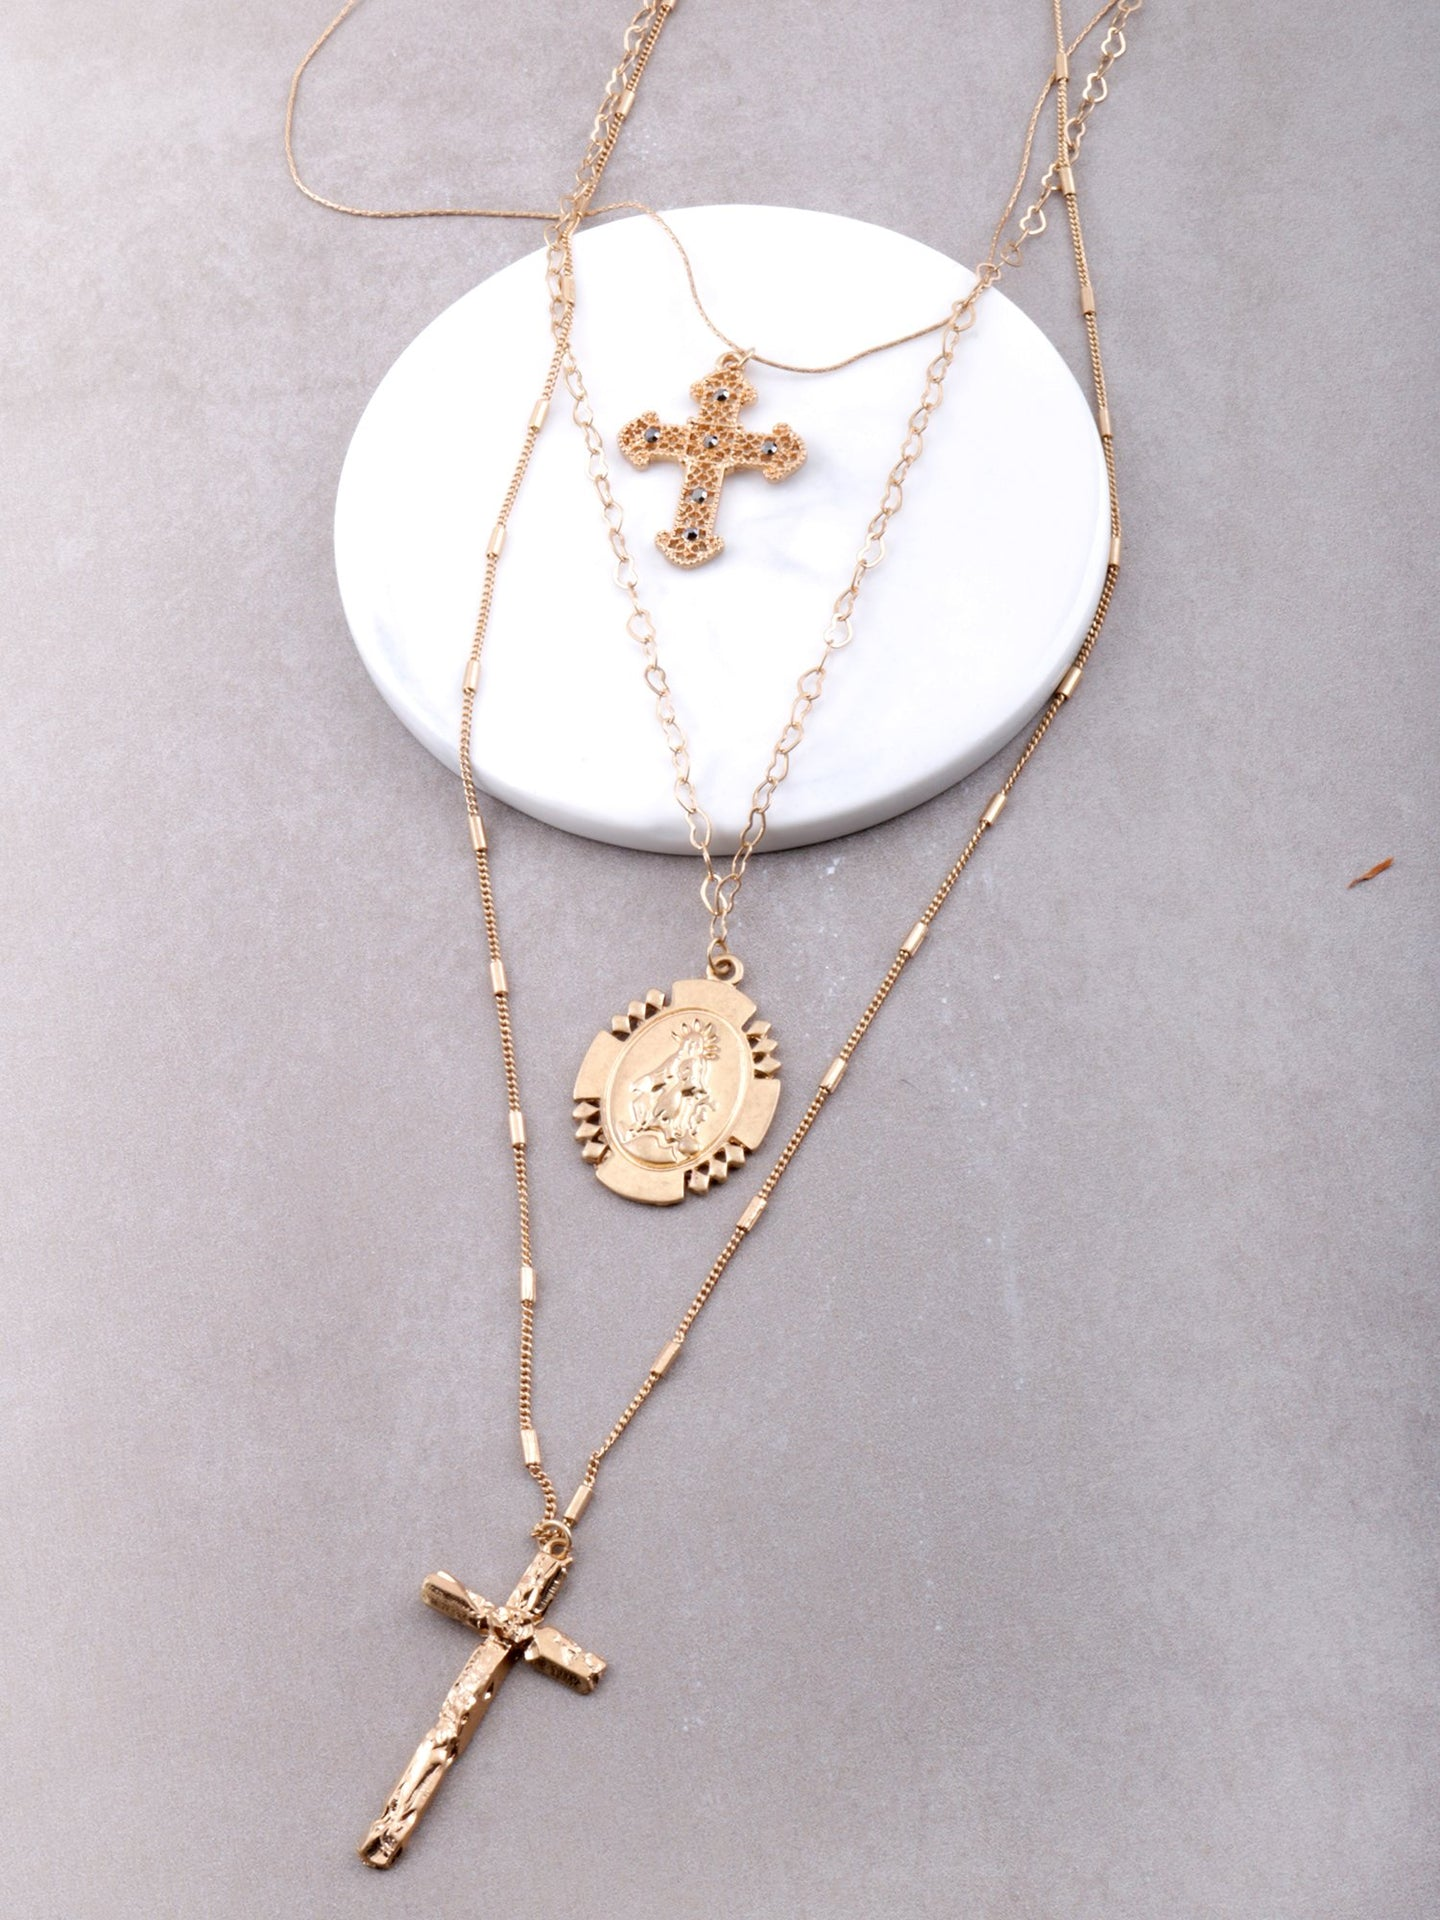 Baroque Layered Rosary Necklace Anarchy Street Gold